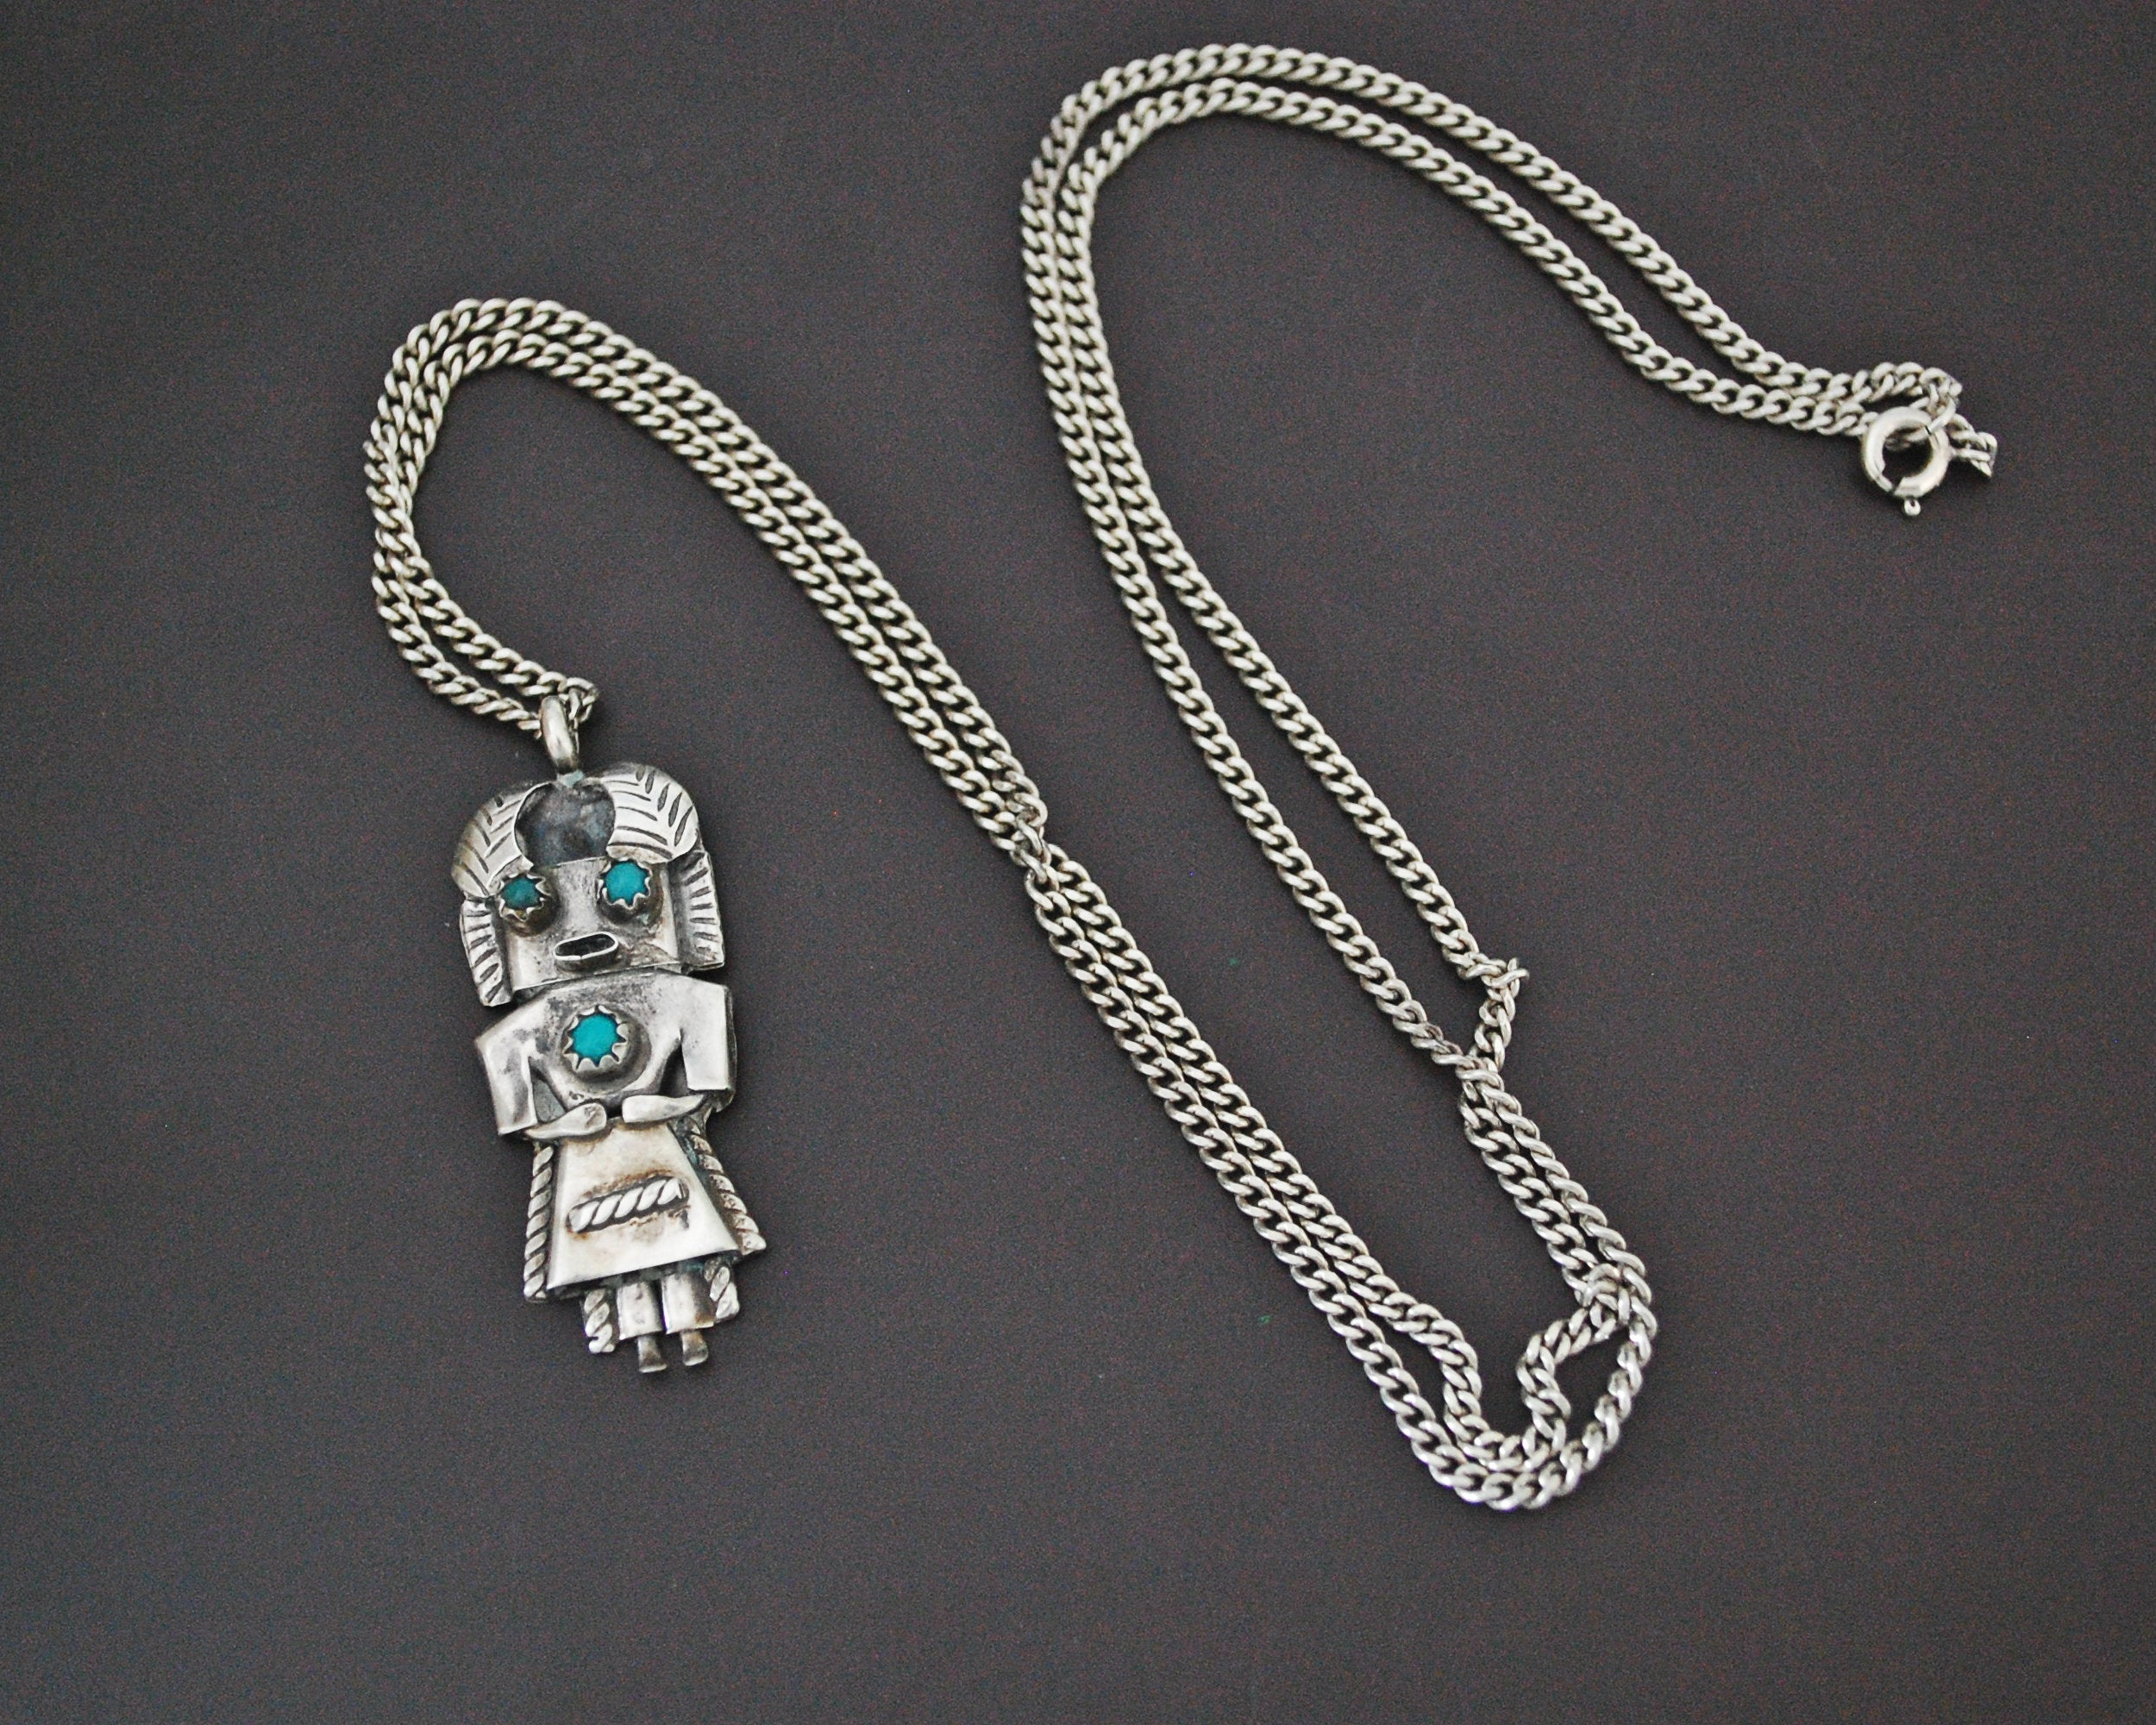 Navajo Kachina Pendant with Silver Chain